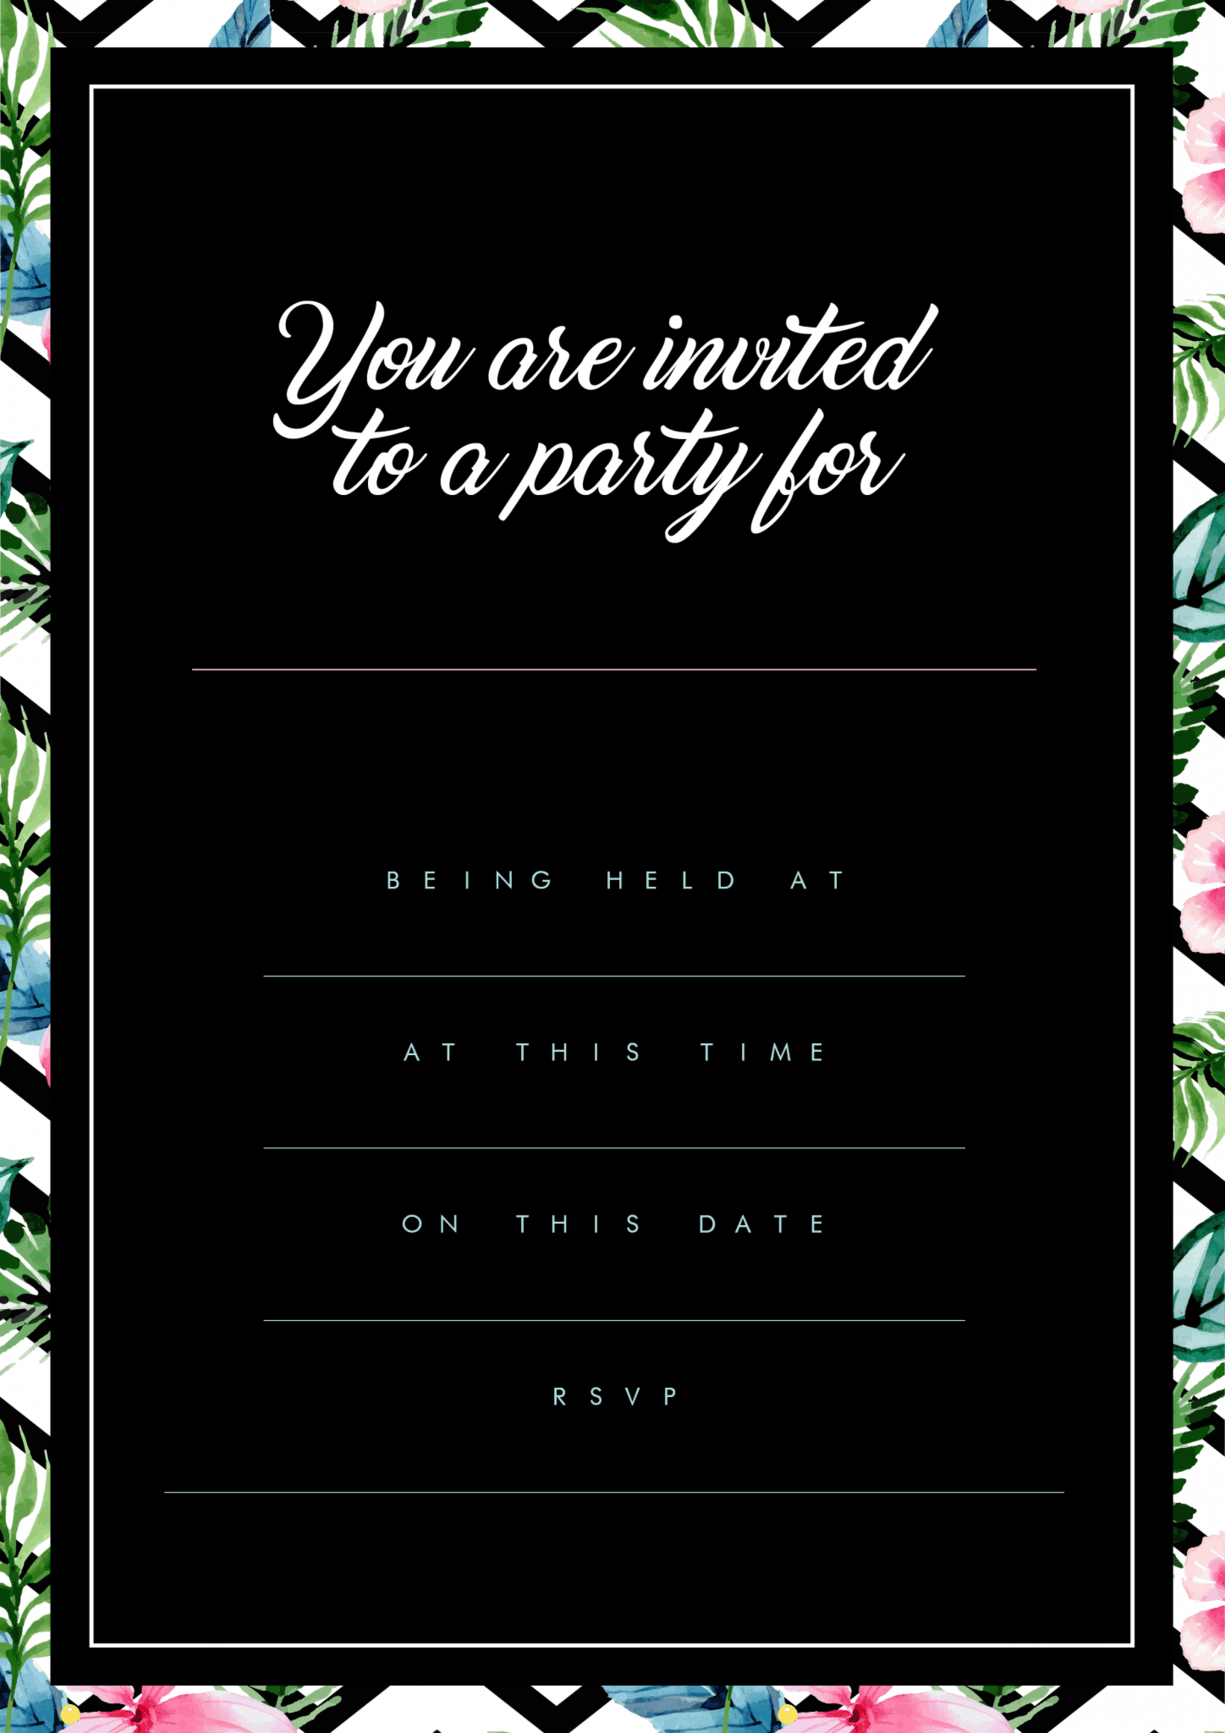 Stylish Modern Invite Black Background Floral